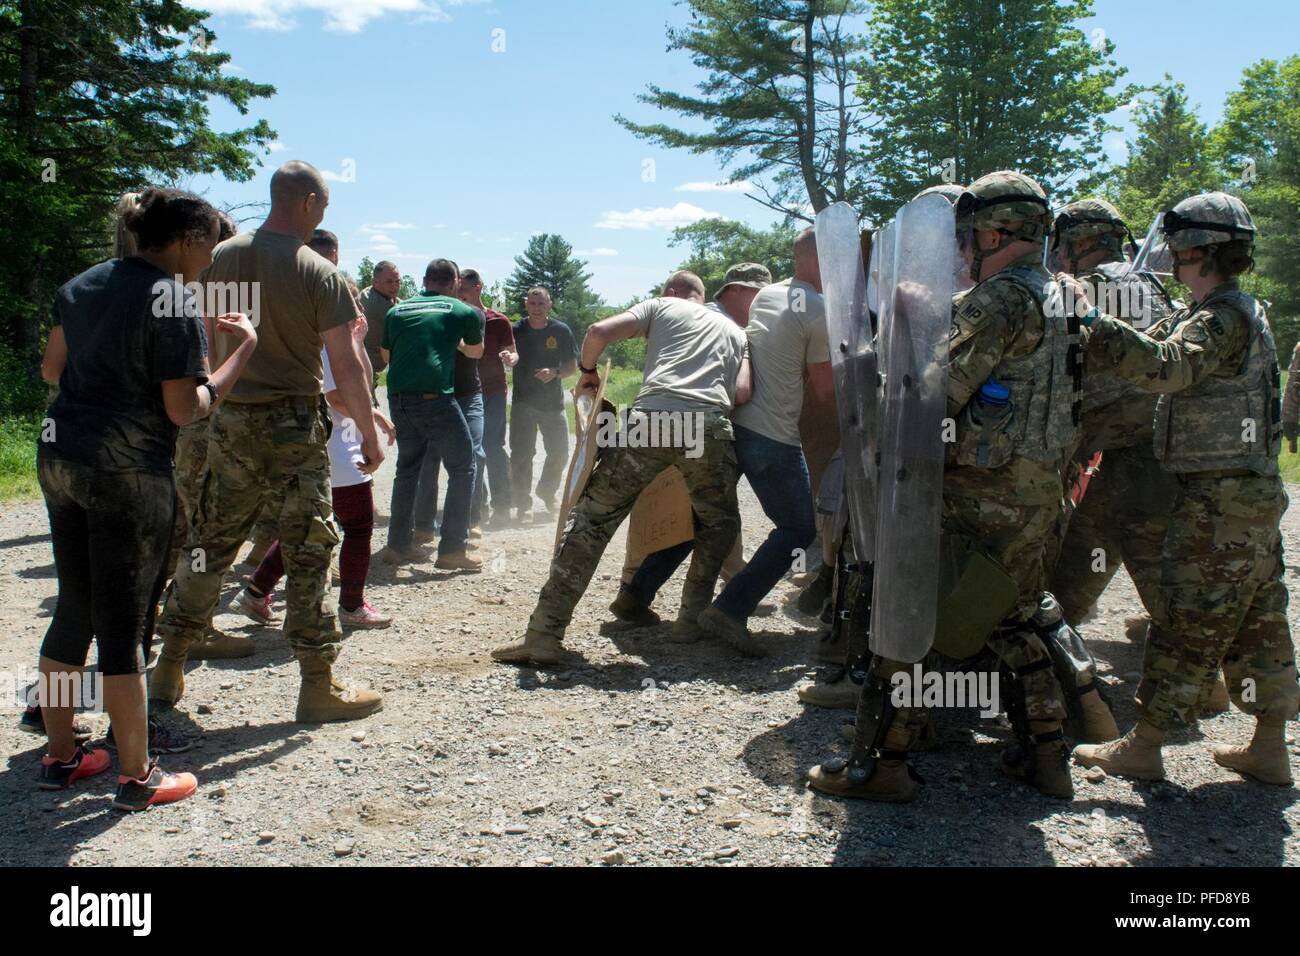 The civil disturbance turns violent and the 488th Military Police Company's quick reaction force holds the line.  The QRF was used during civil disturbance exercise as part of the MP's National Guard Reaction Force evaluation at Plymouth Training Area, June 2, 2018. (Maine Army National Guard - Stock Image